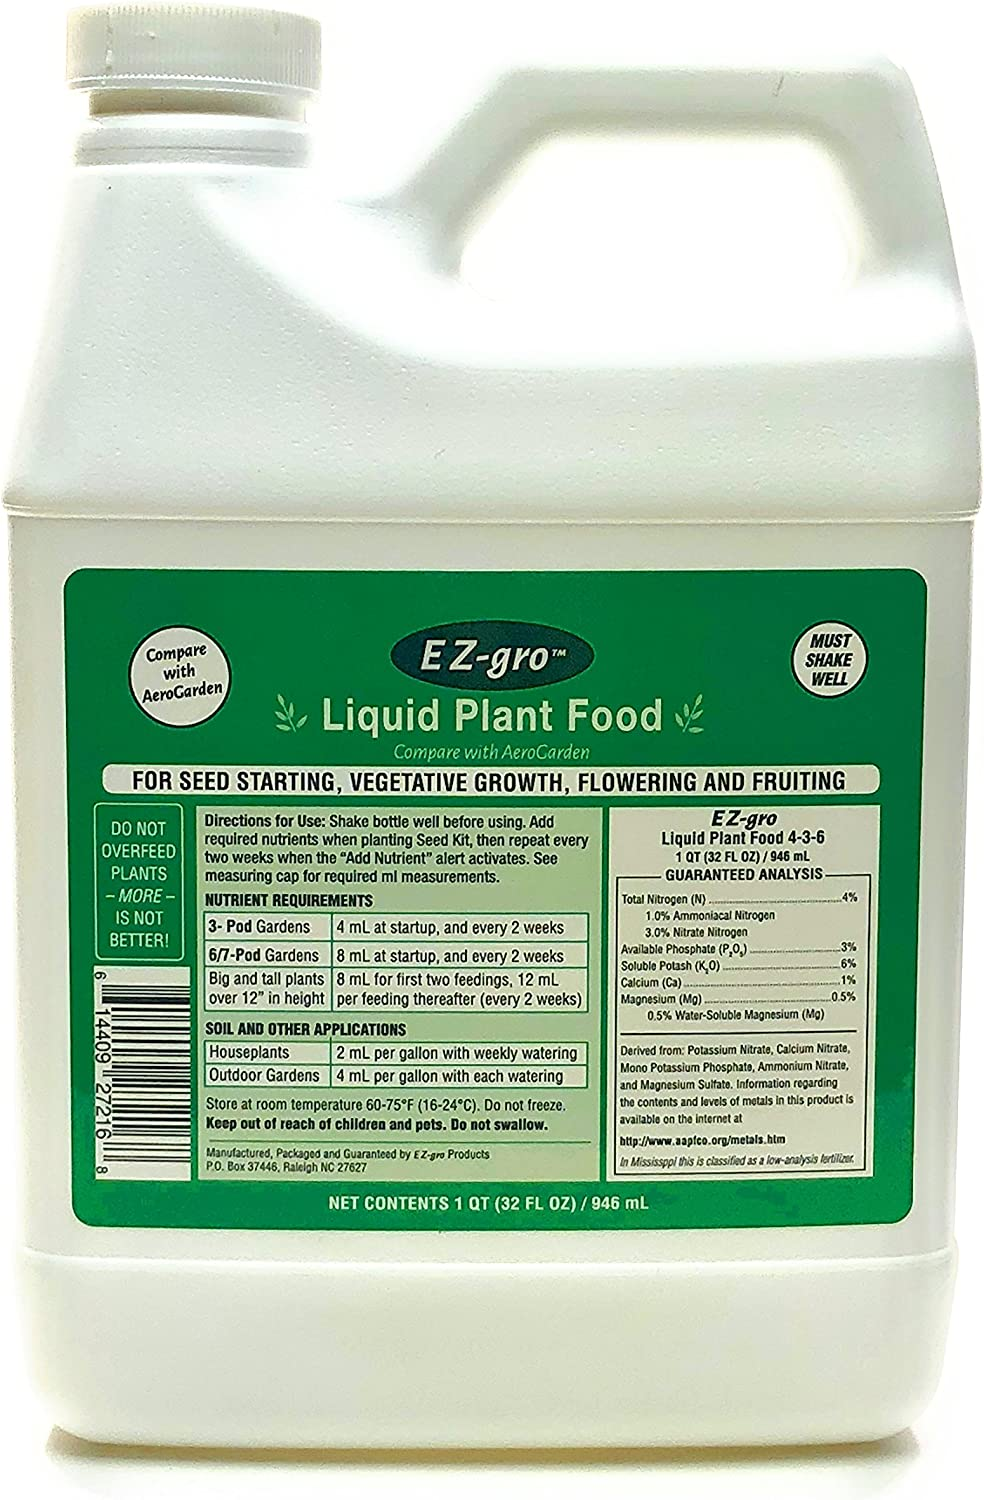 Liquid Plant Food for Aerogardens | Liquid Fertilizer with Hydroponic Nutrients | Liquid Fertilizer for Plants in Aerogarden Sponges | Aerogarden Liquid Food Compatible | 1 QT (32 oz)